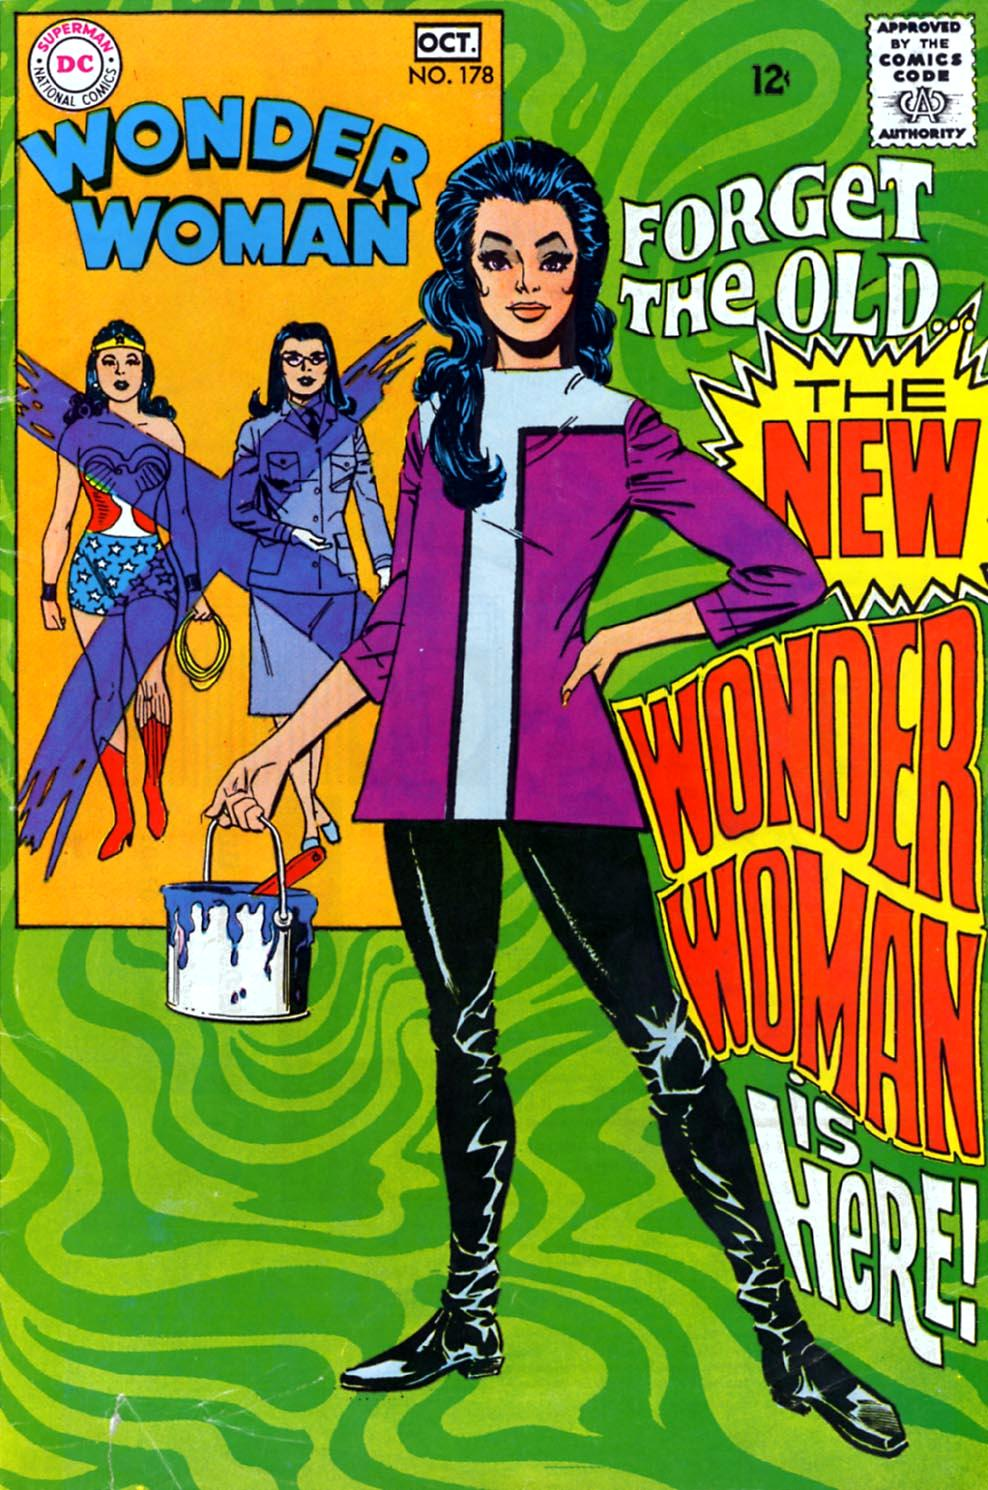 Hell, I'D buy it! And I did, as a back issue 30 years later.